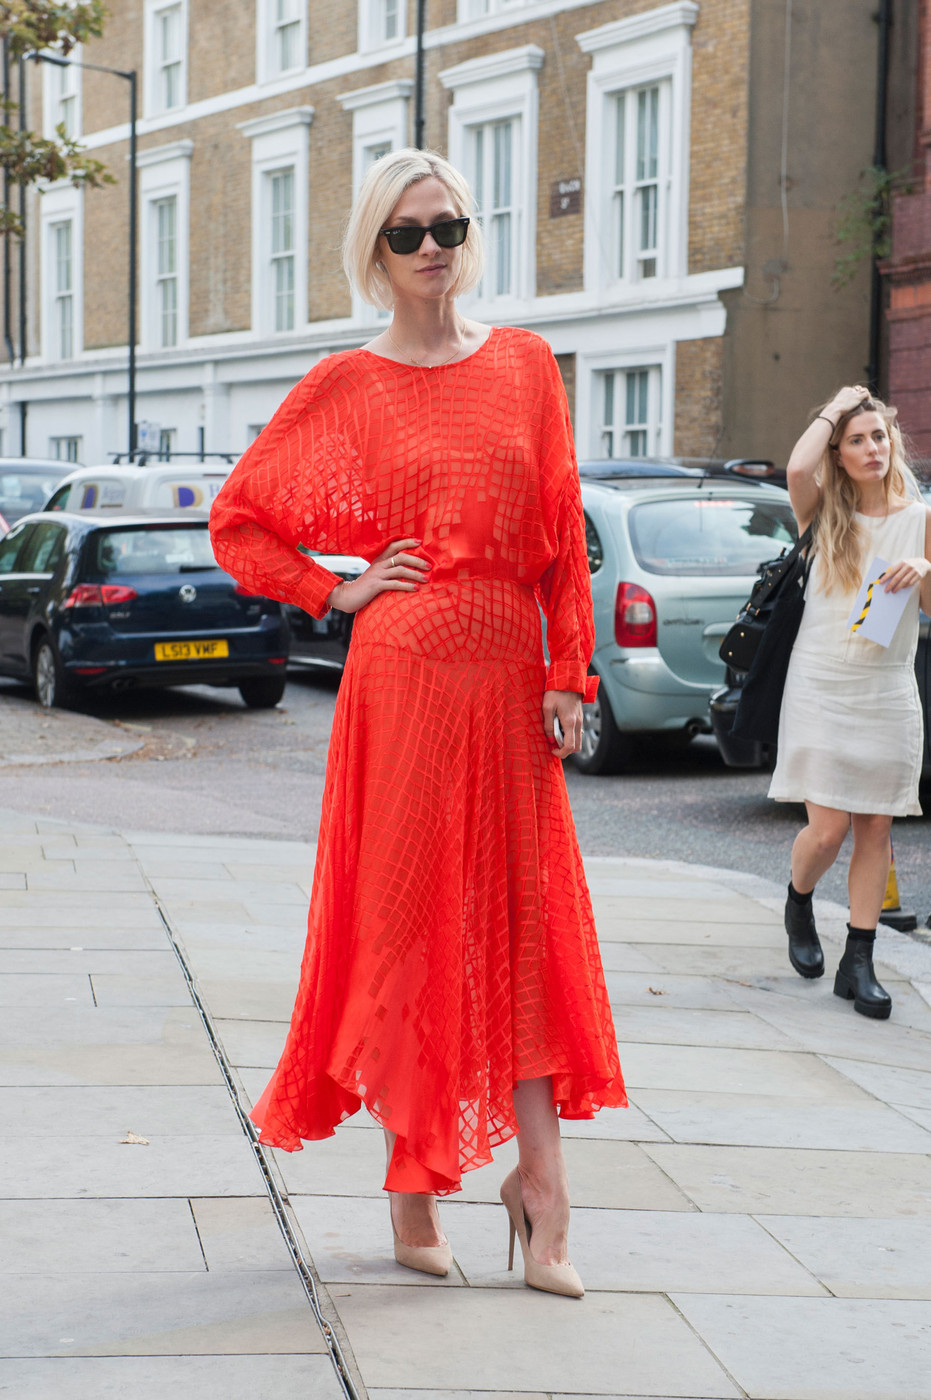 Red Haute Best Street Style At London Fashion Week Spring 2015 Stylebistro